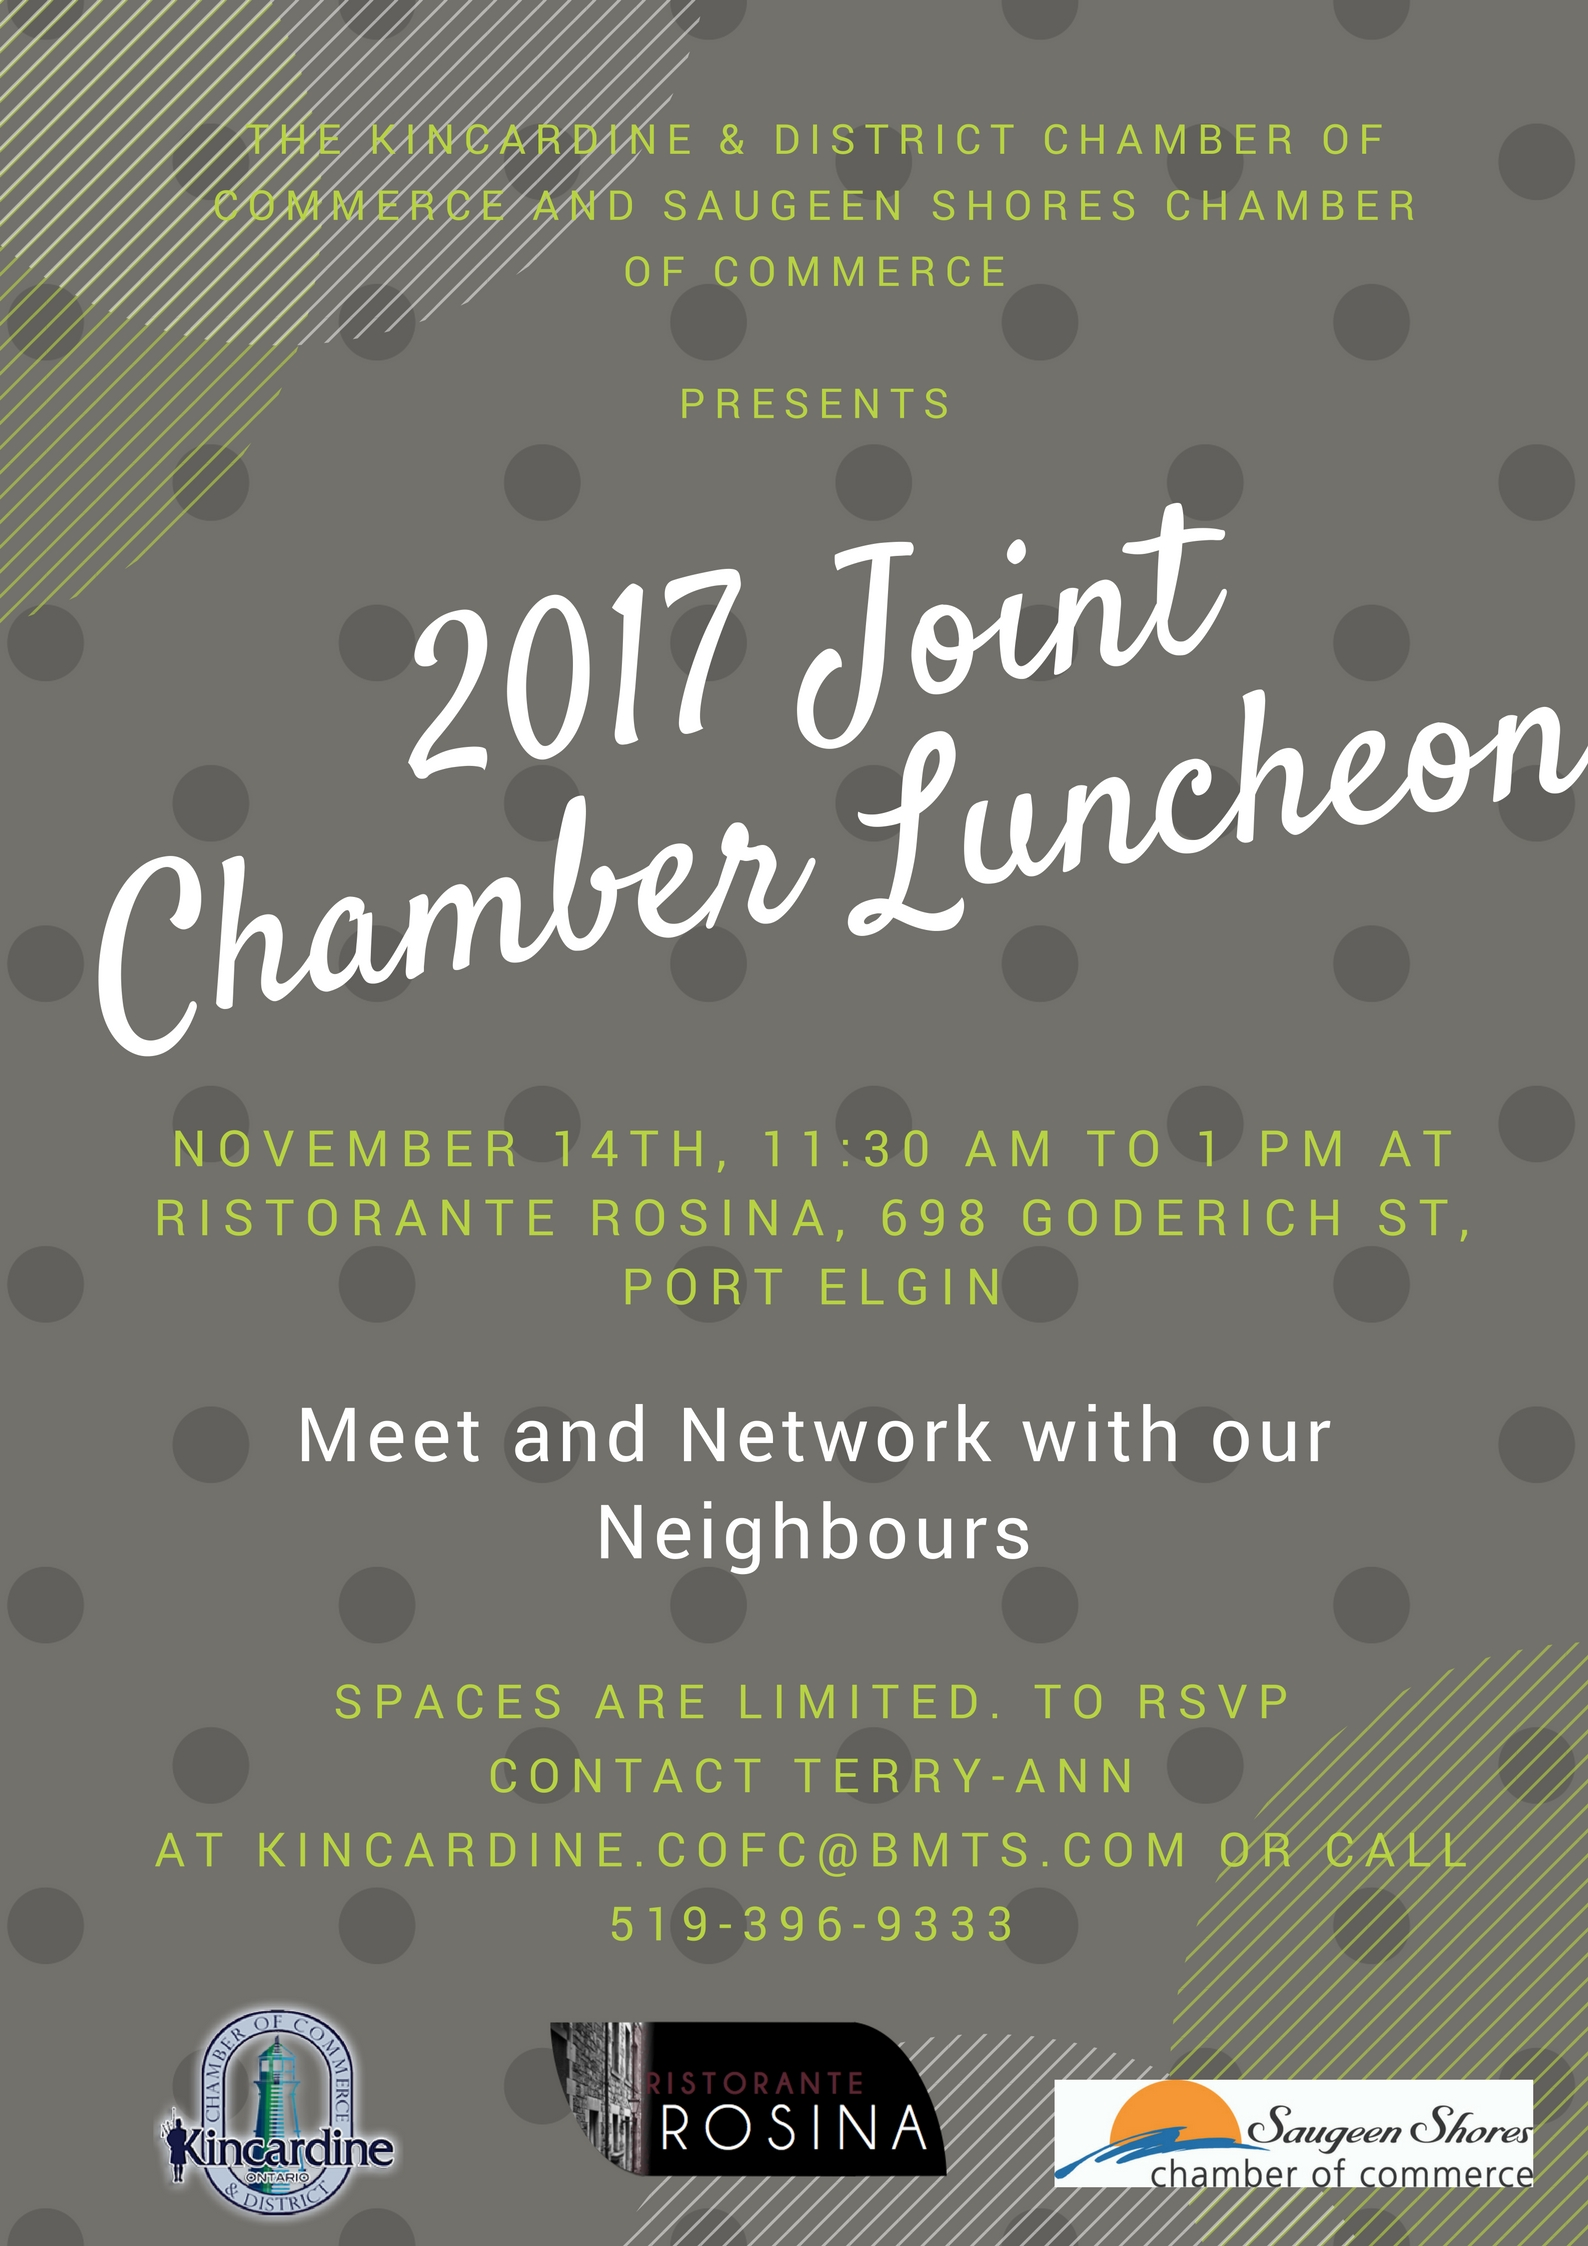 Kincardine and Saugeen Shores Joint Chamber Luncheon